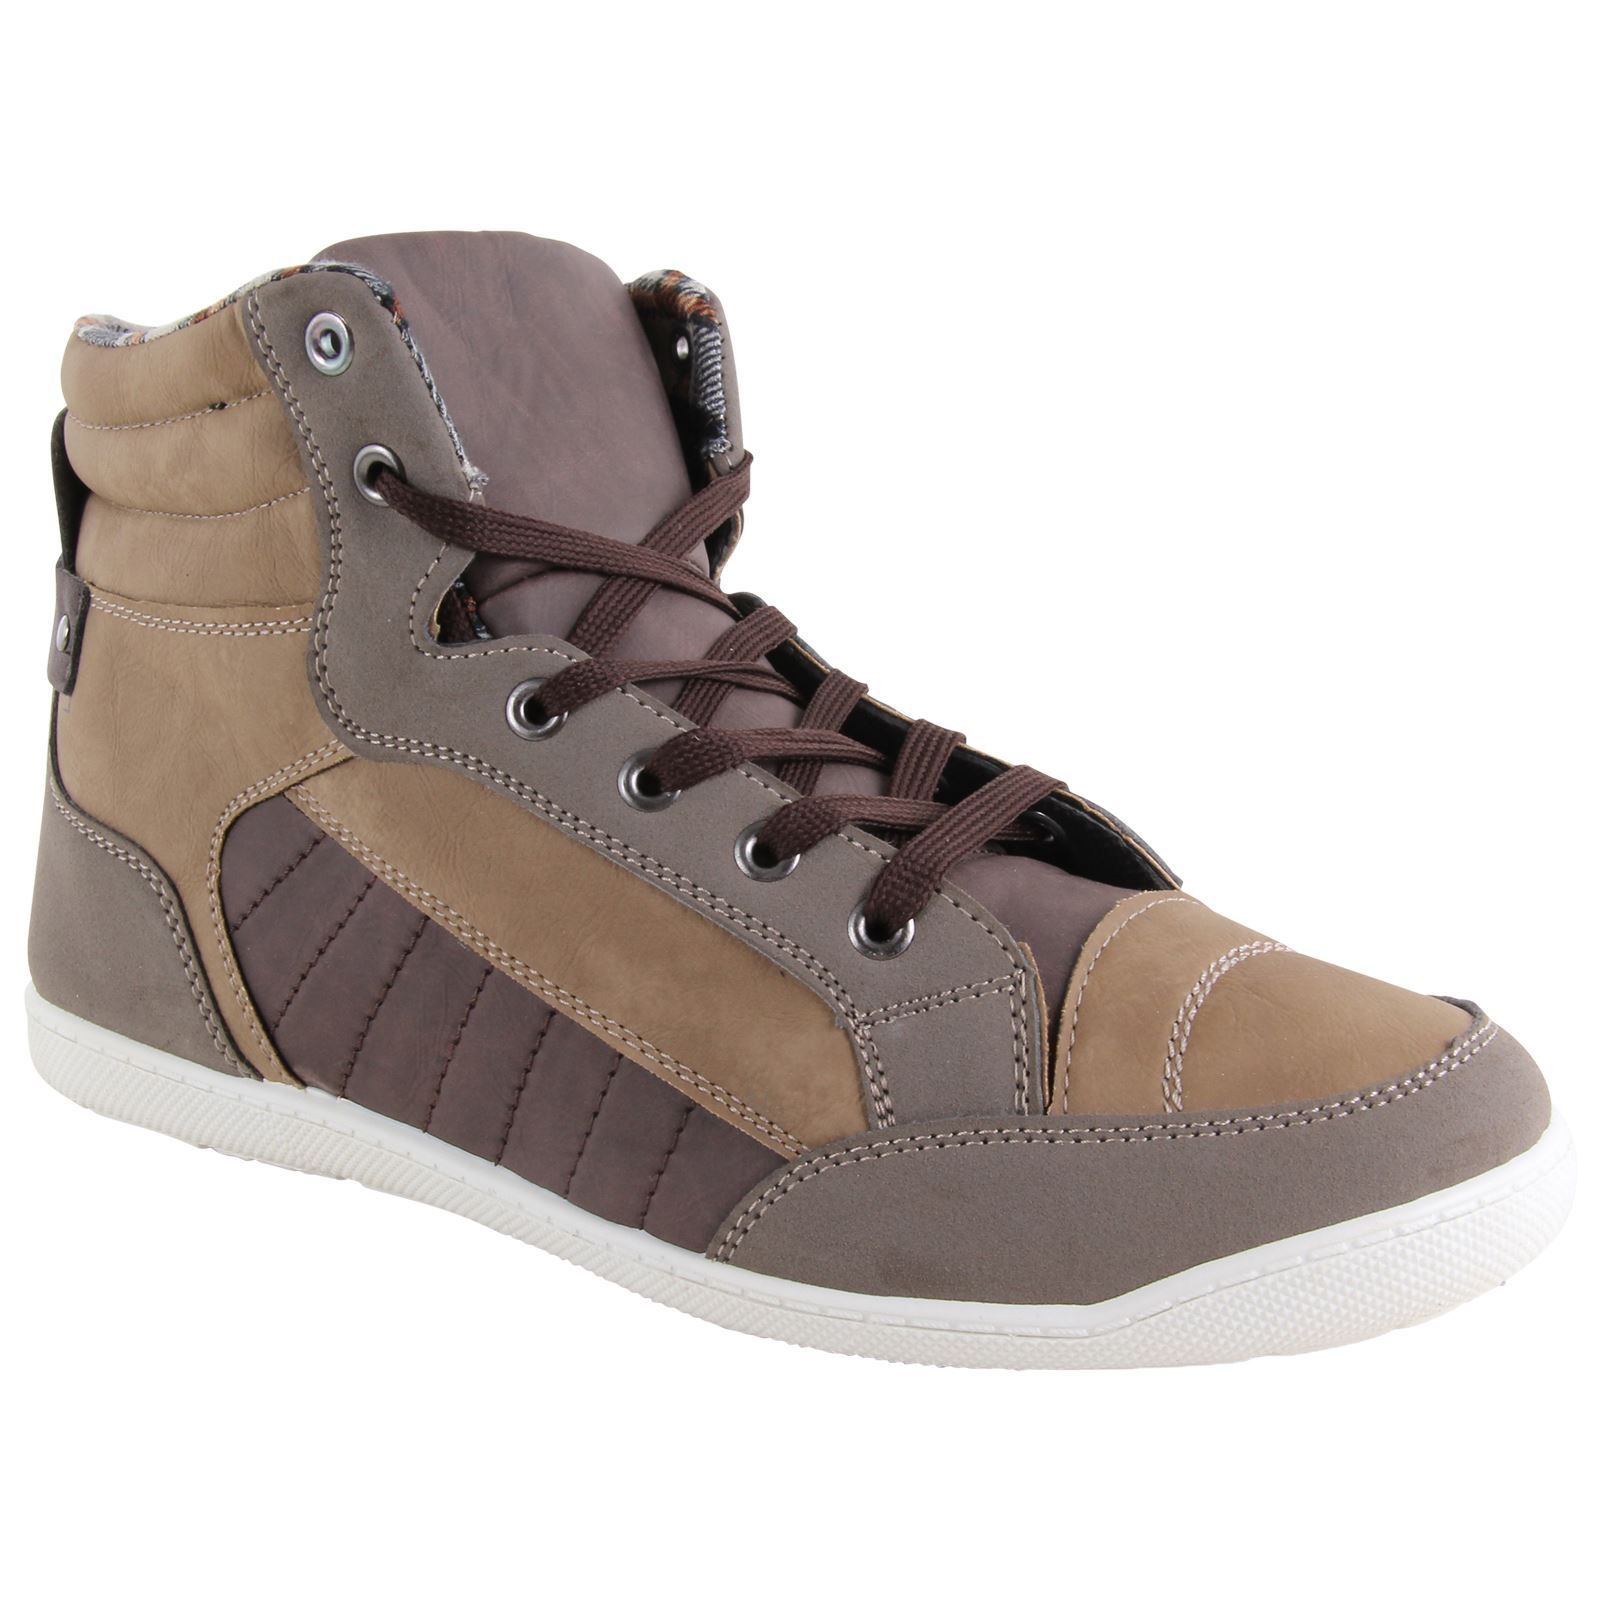 Mens high top sneakers fashion 27